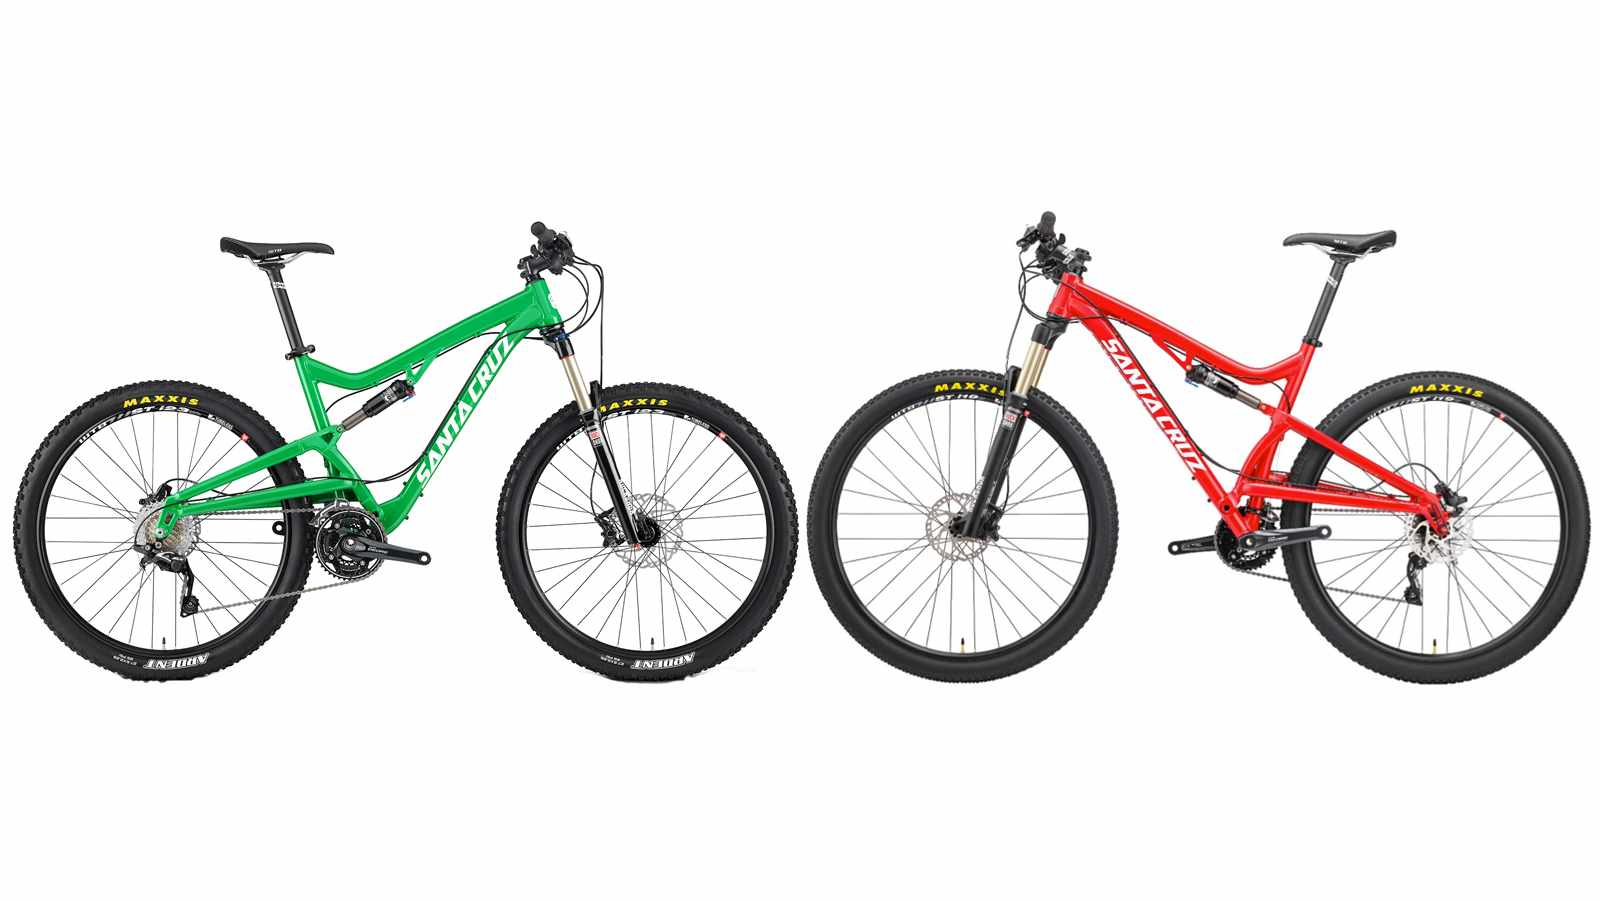 A 29er to 27.5in conversion is nothing but bad news, particularly when there are so many dialled 27.5in options available